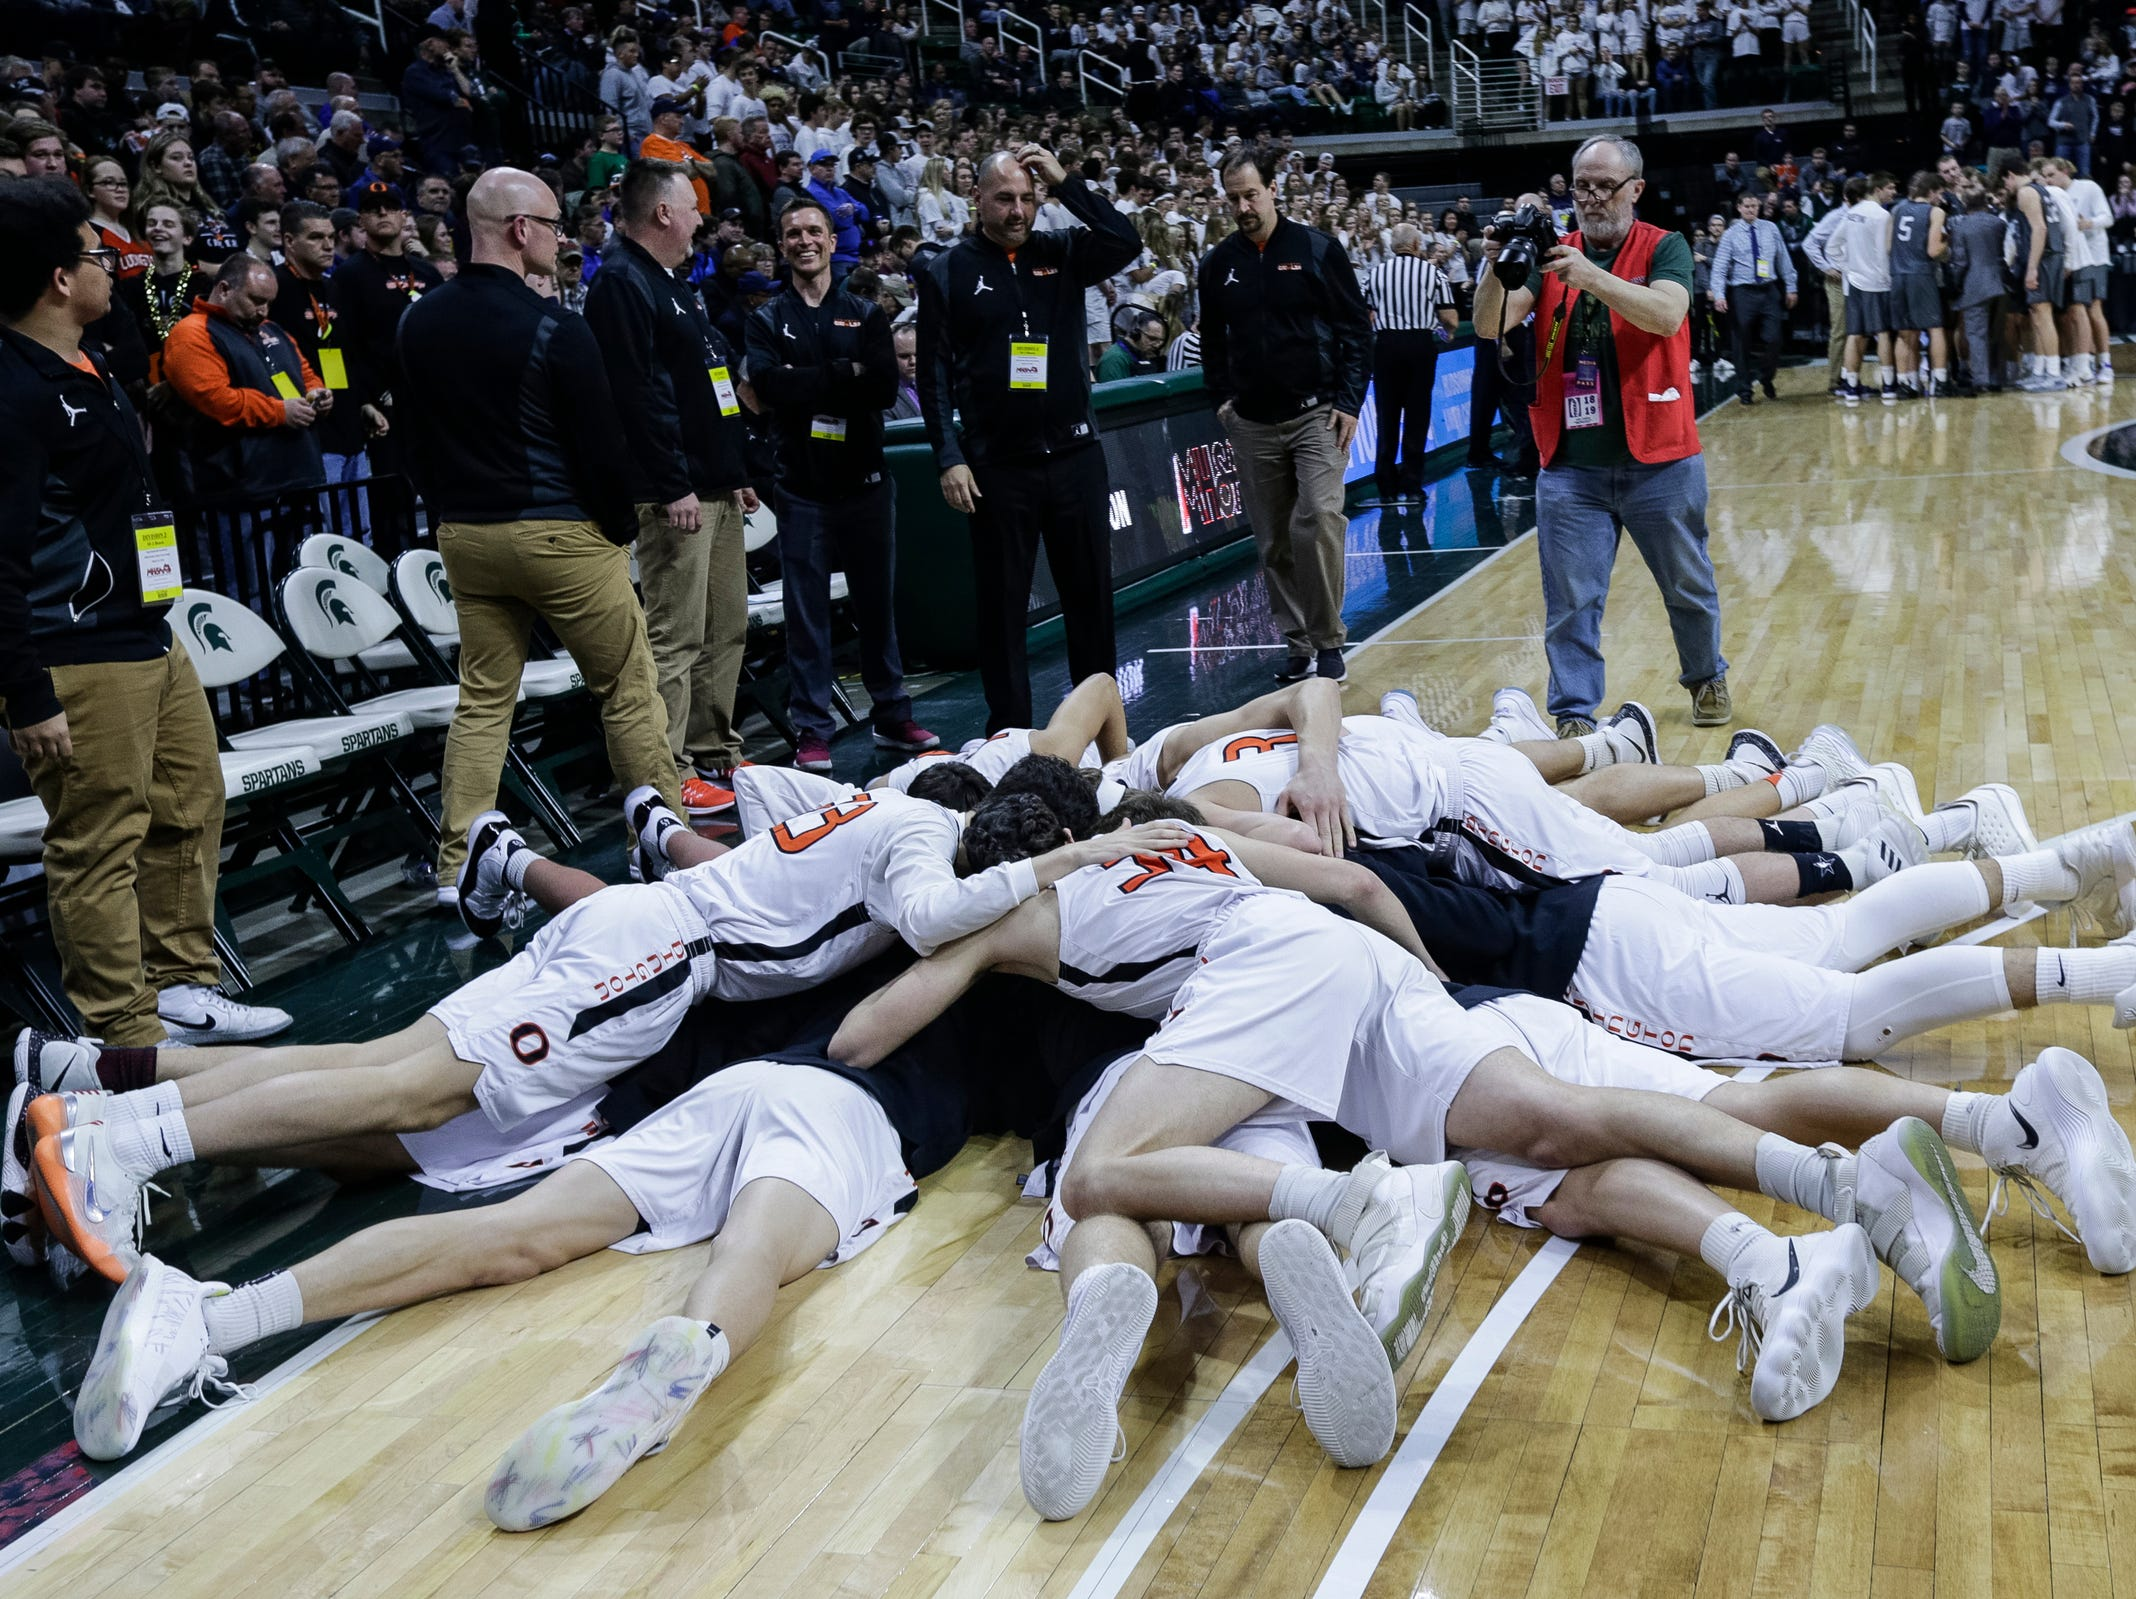 Ludington players huddle before the first half of MHSAA Division 2 semifinal against Hudsonville Unity Christian at the Breslin Center in East Lansing, Friday, March 15, 2019.